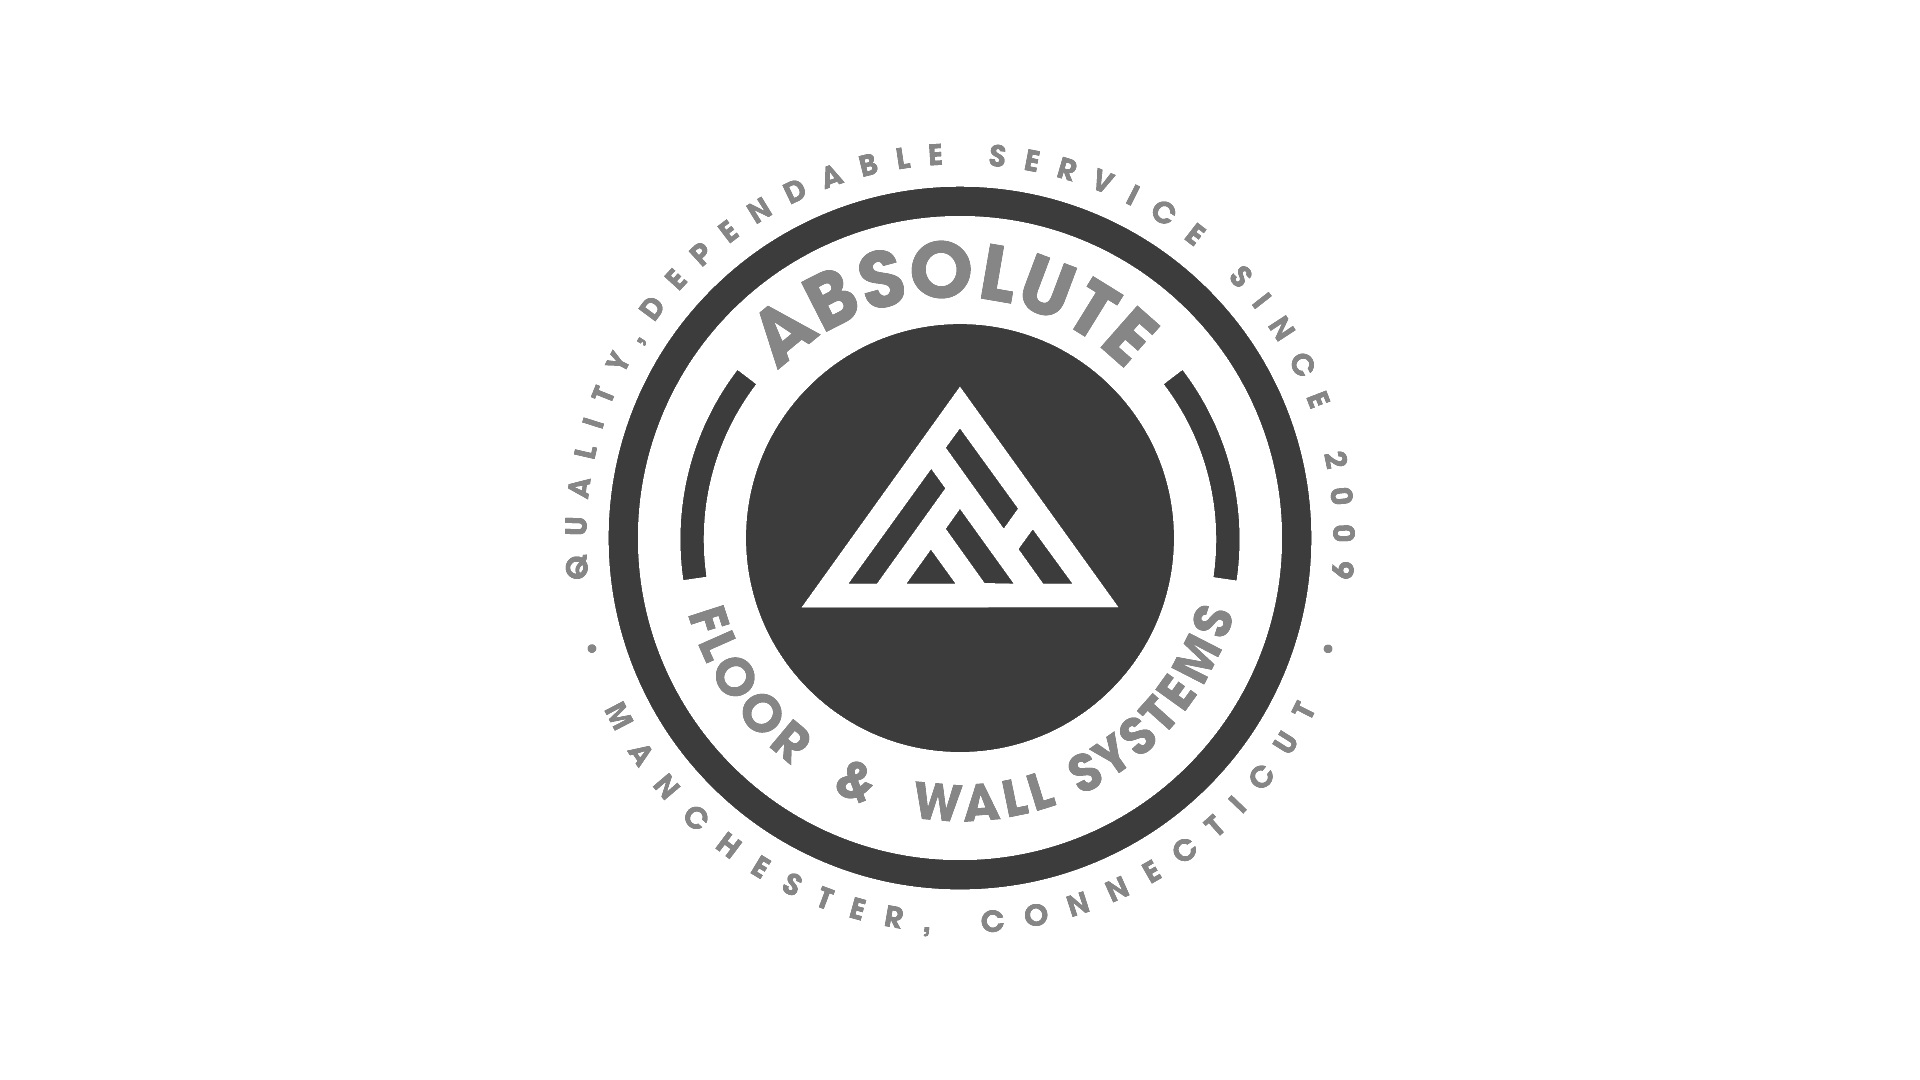 absolute-floor-and-wall-systems